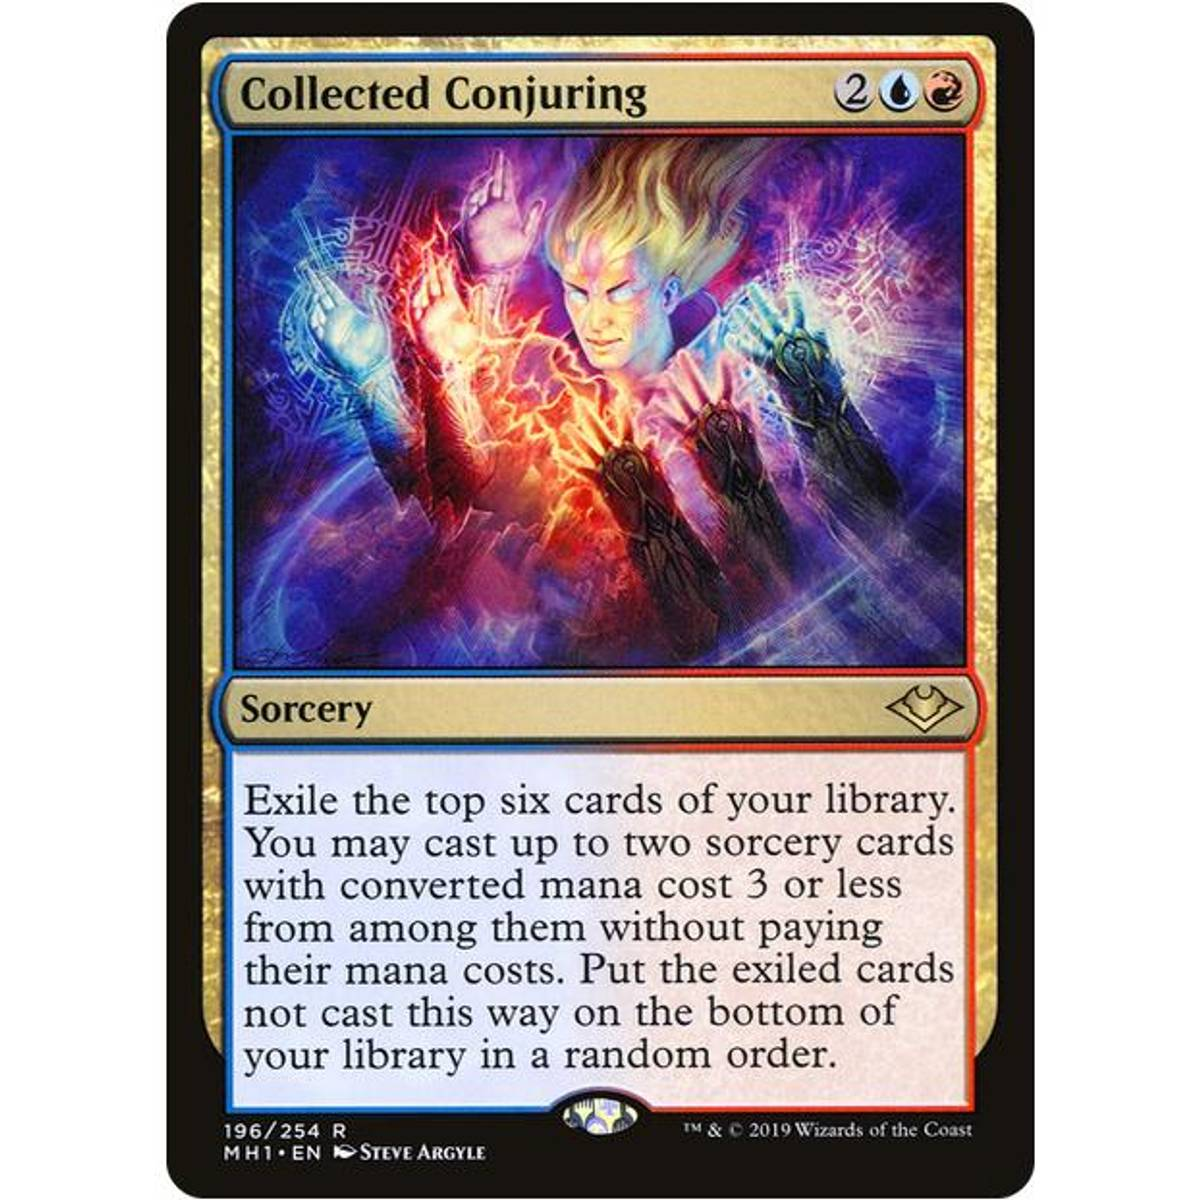 Collected Conjuring